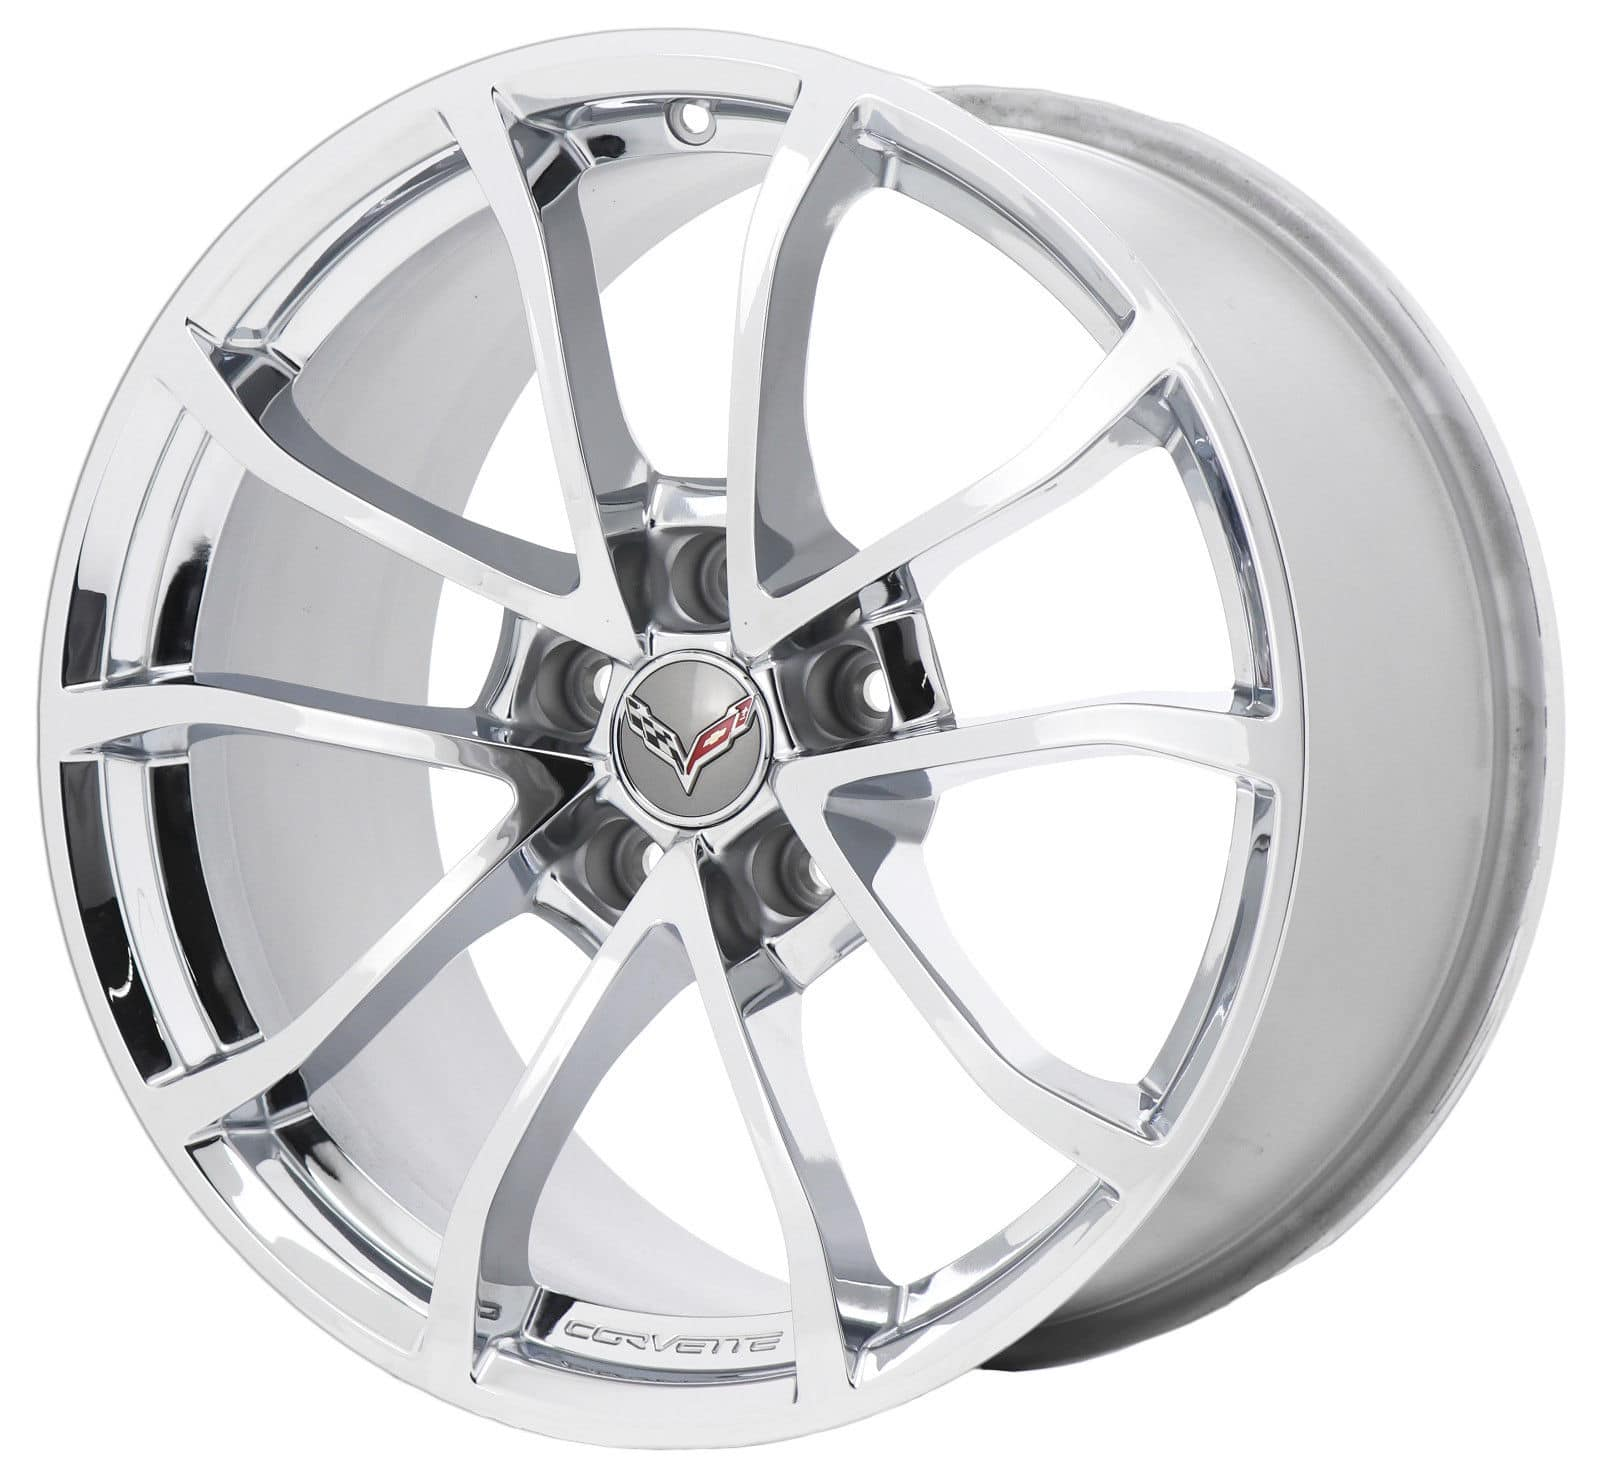 GM C7 Grand Sport Cup Wheels - Chrome